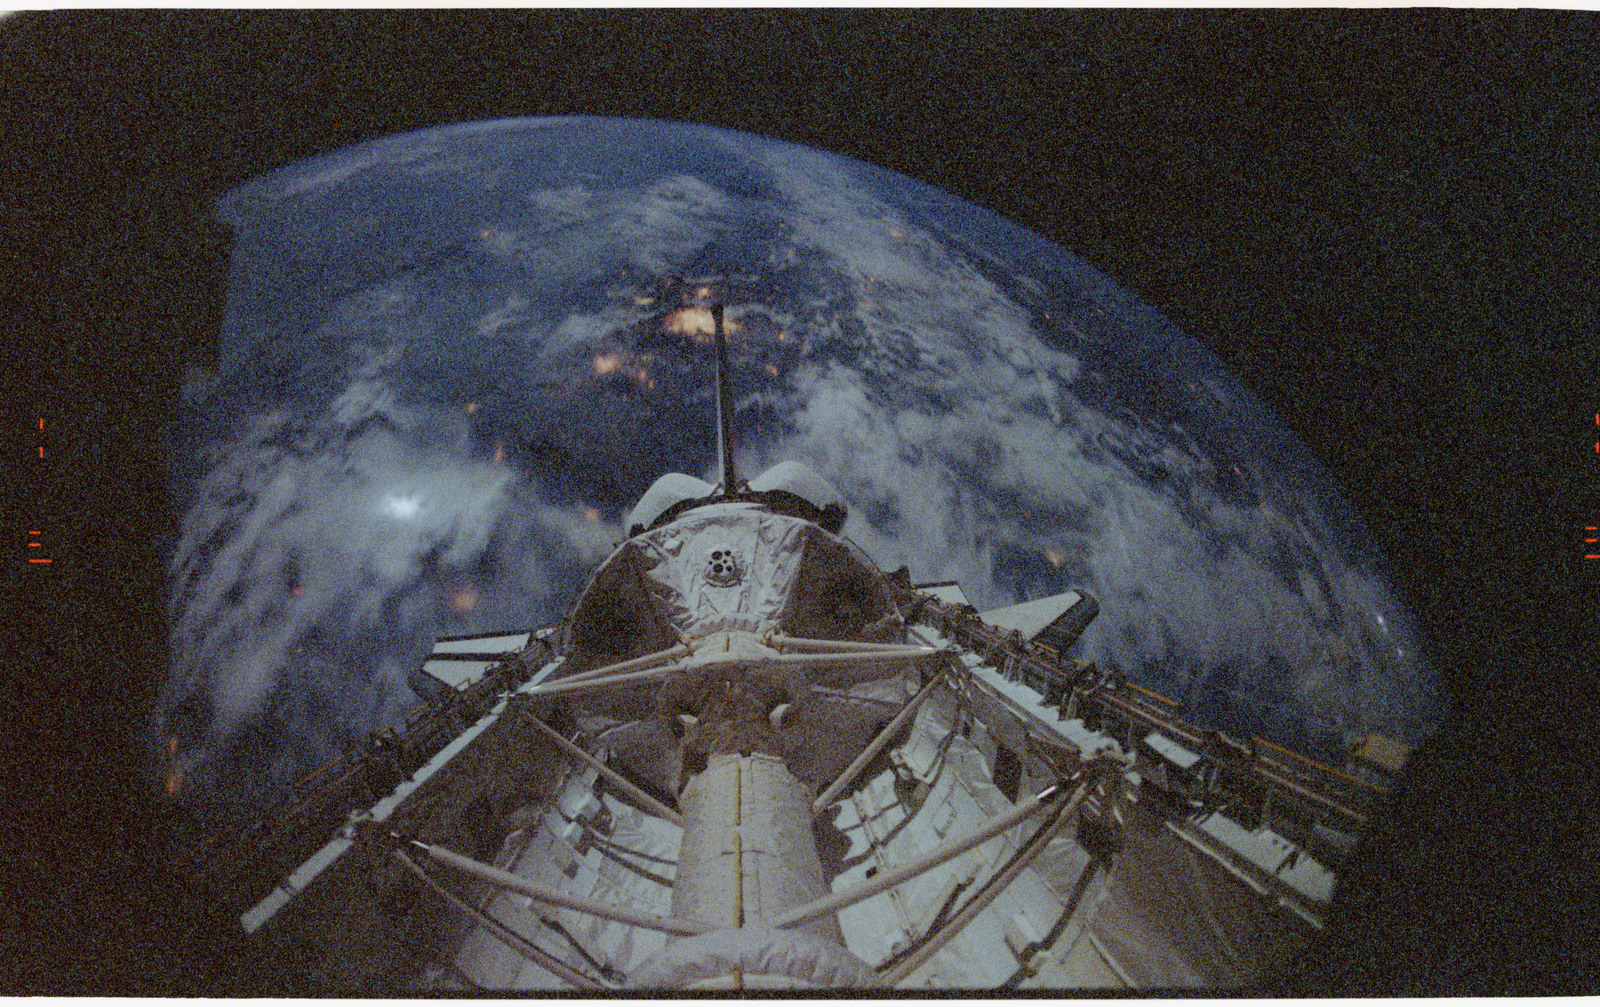 STS055-26-020 - STS-055 - Earth Limb, D-2 Spacelab and Payload Bay.